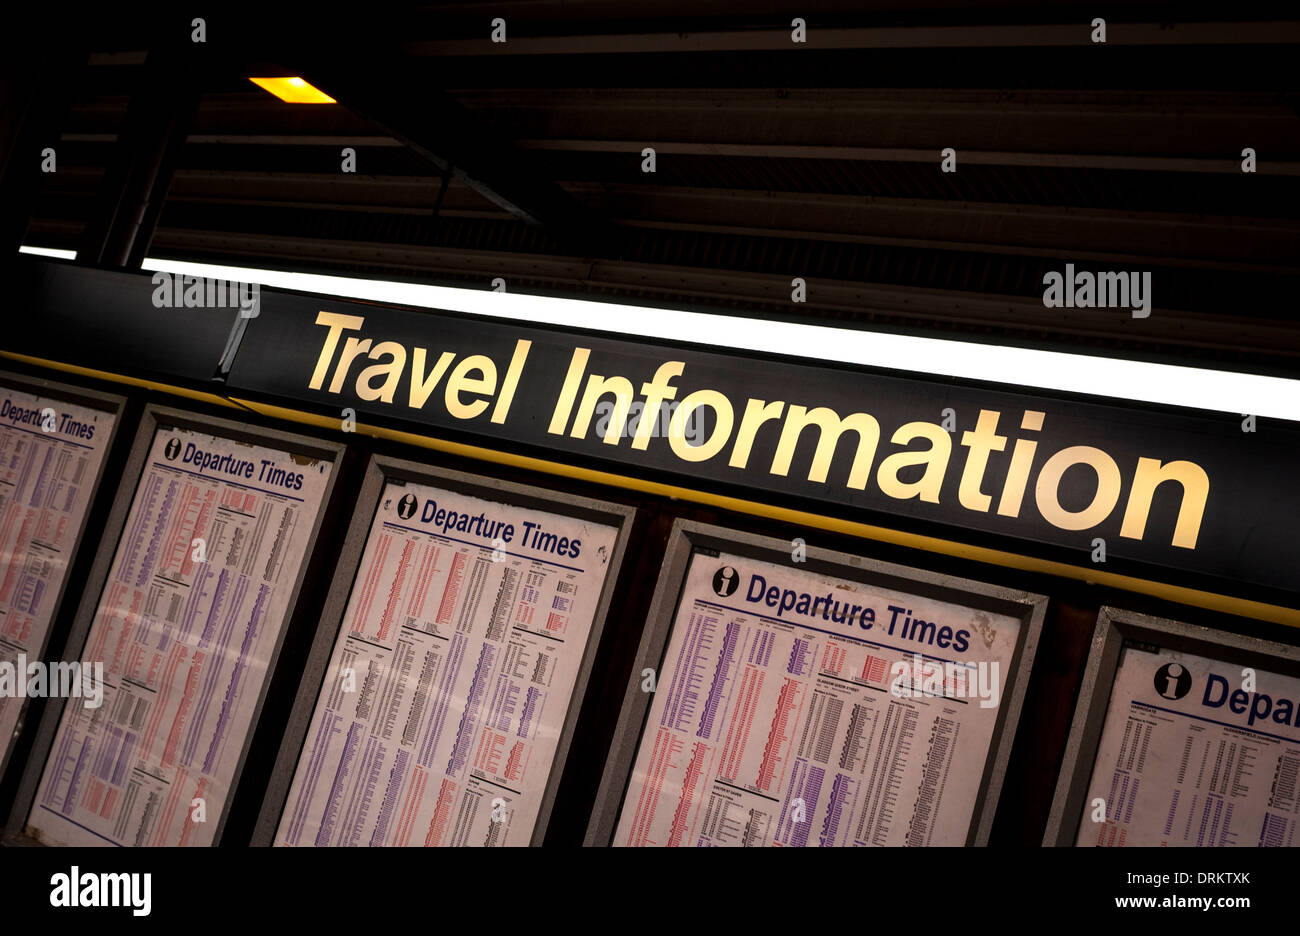 Travel information board at railway station - Stock Image